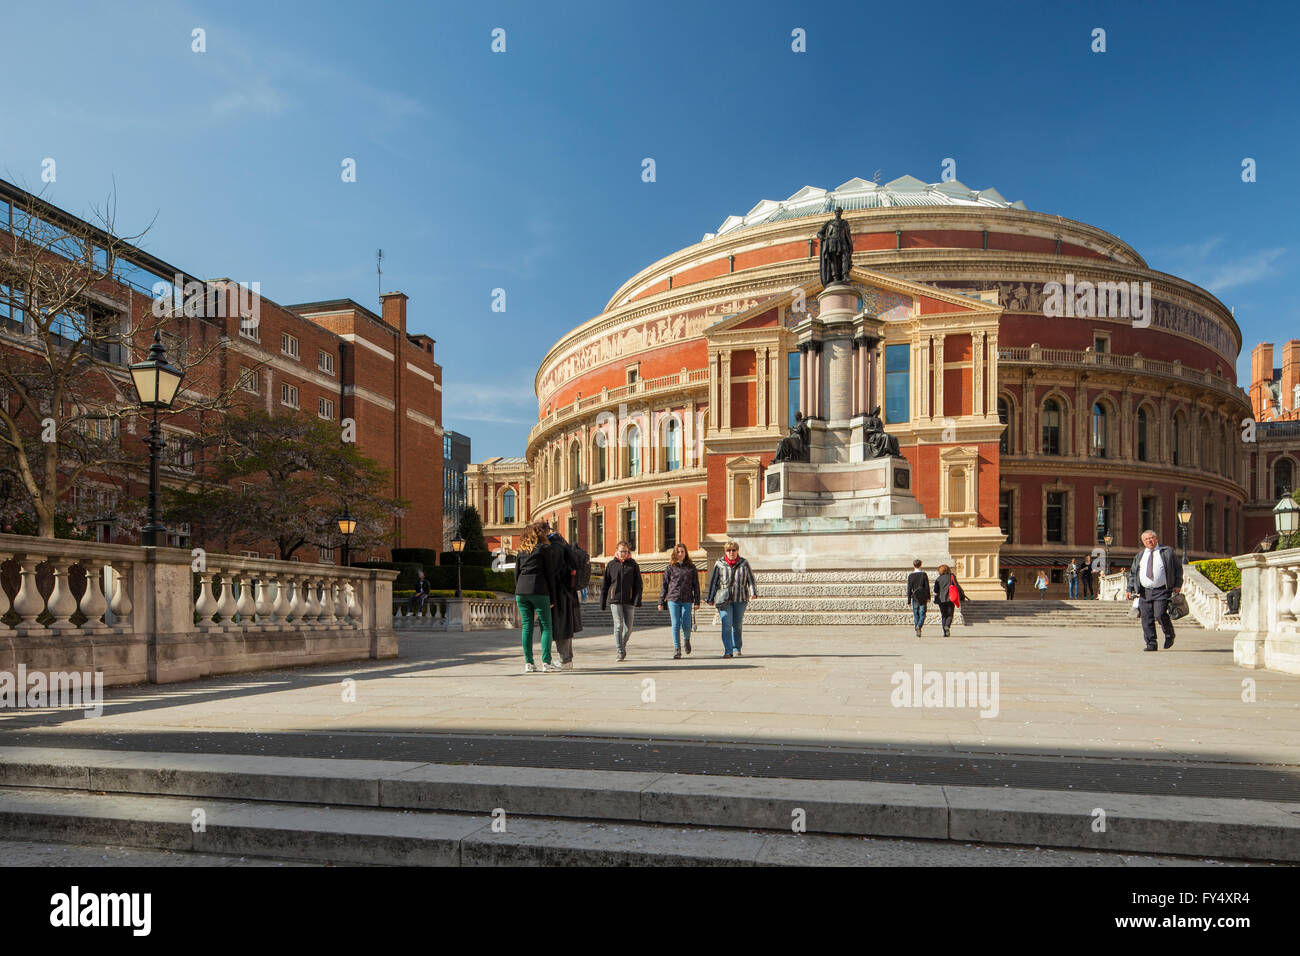 Albert Hall en Kensington, Londres, Inglaterra. Imagen De Stock